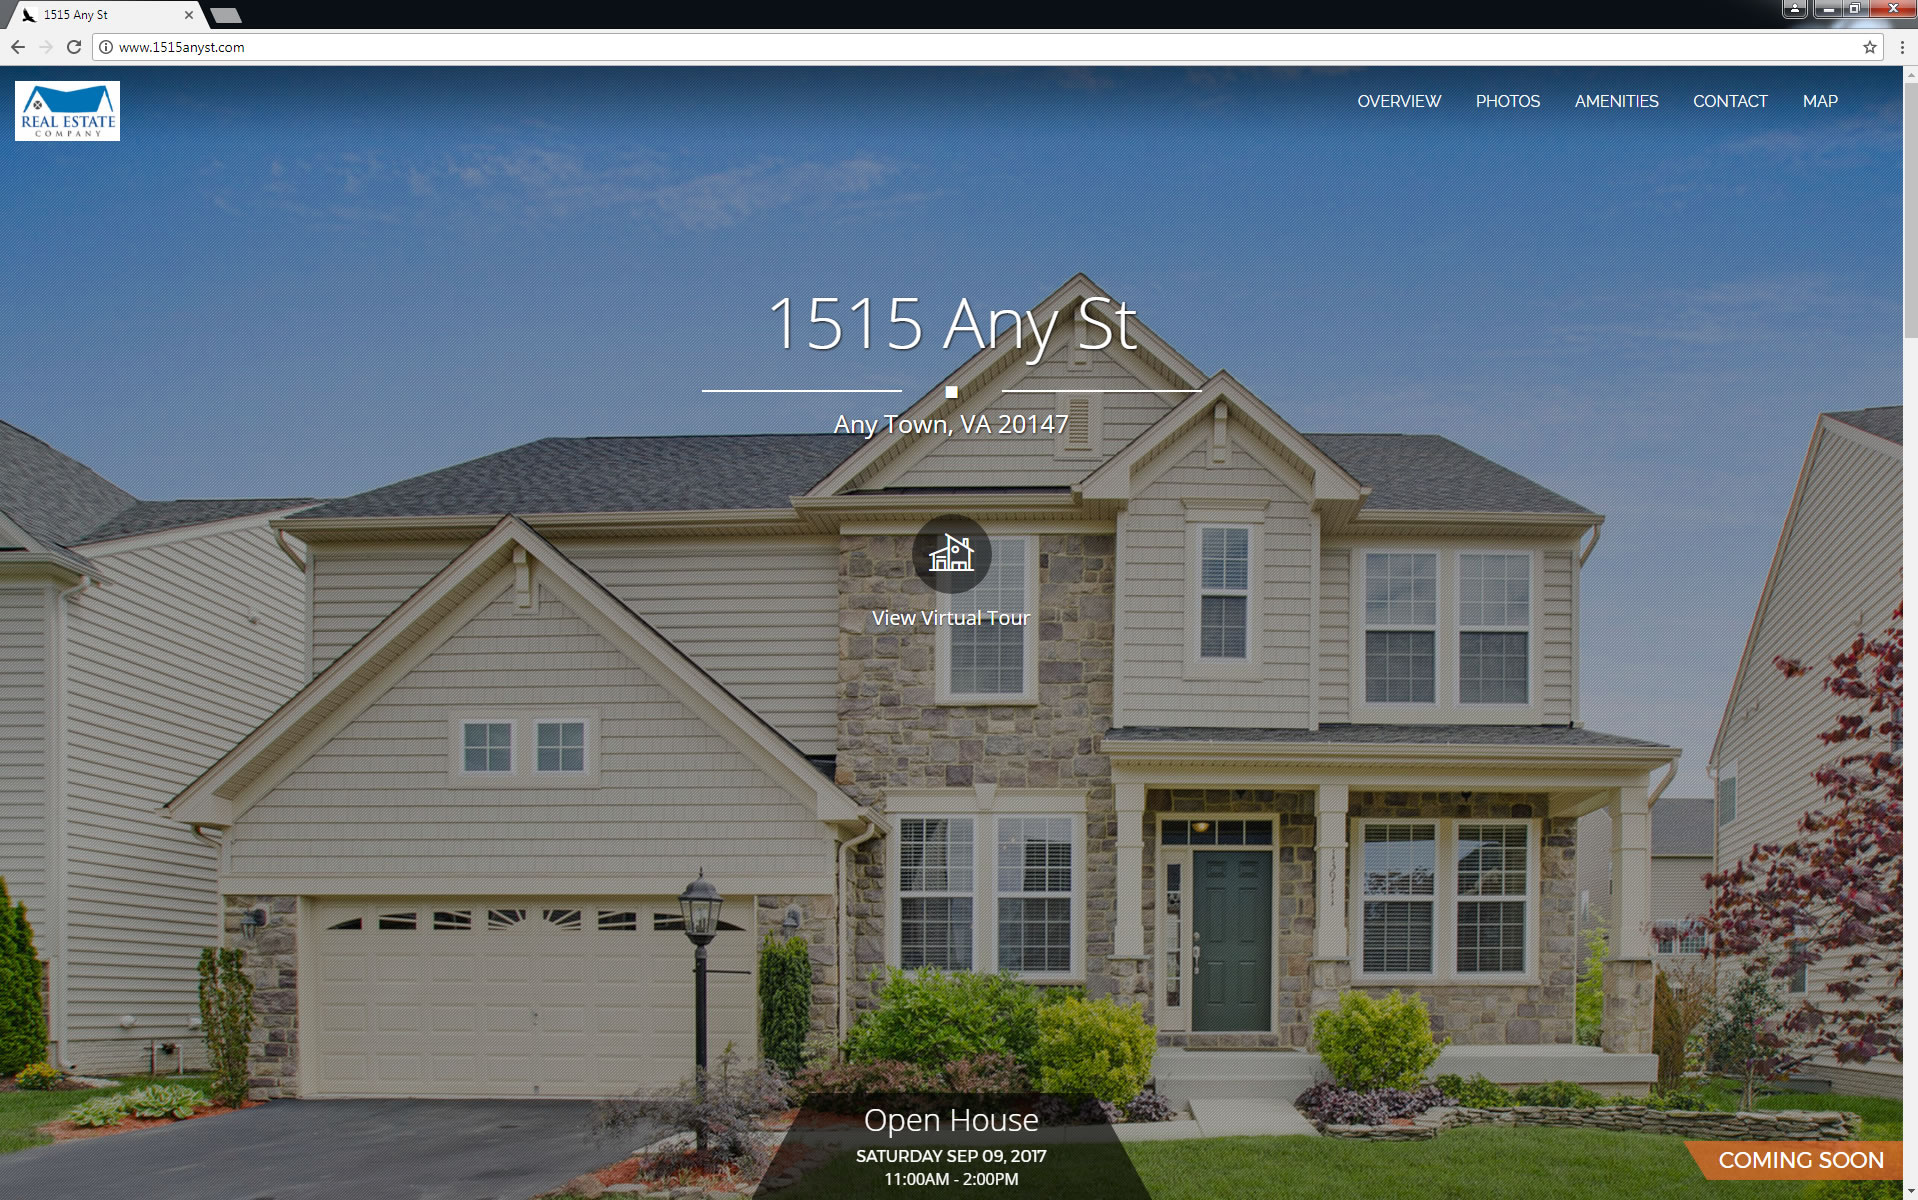 Bring more buyer leads with our Single Property Websites! -